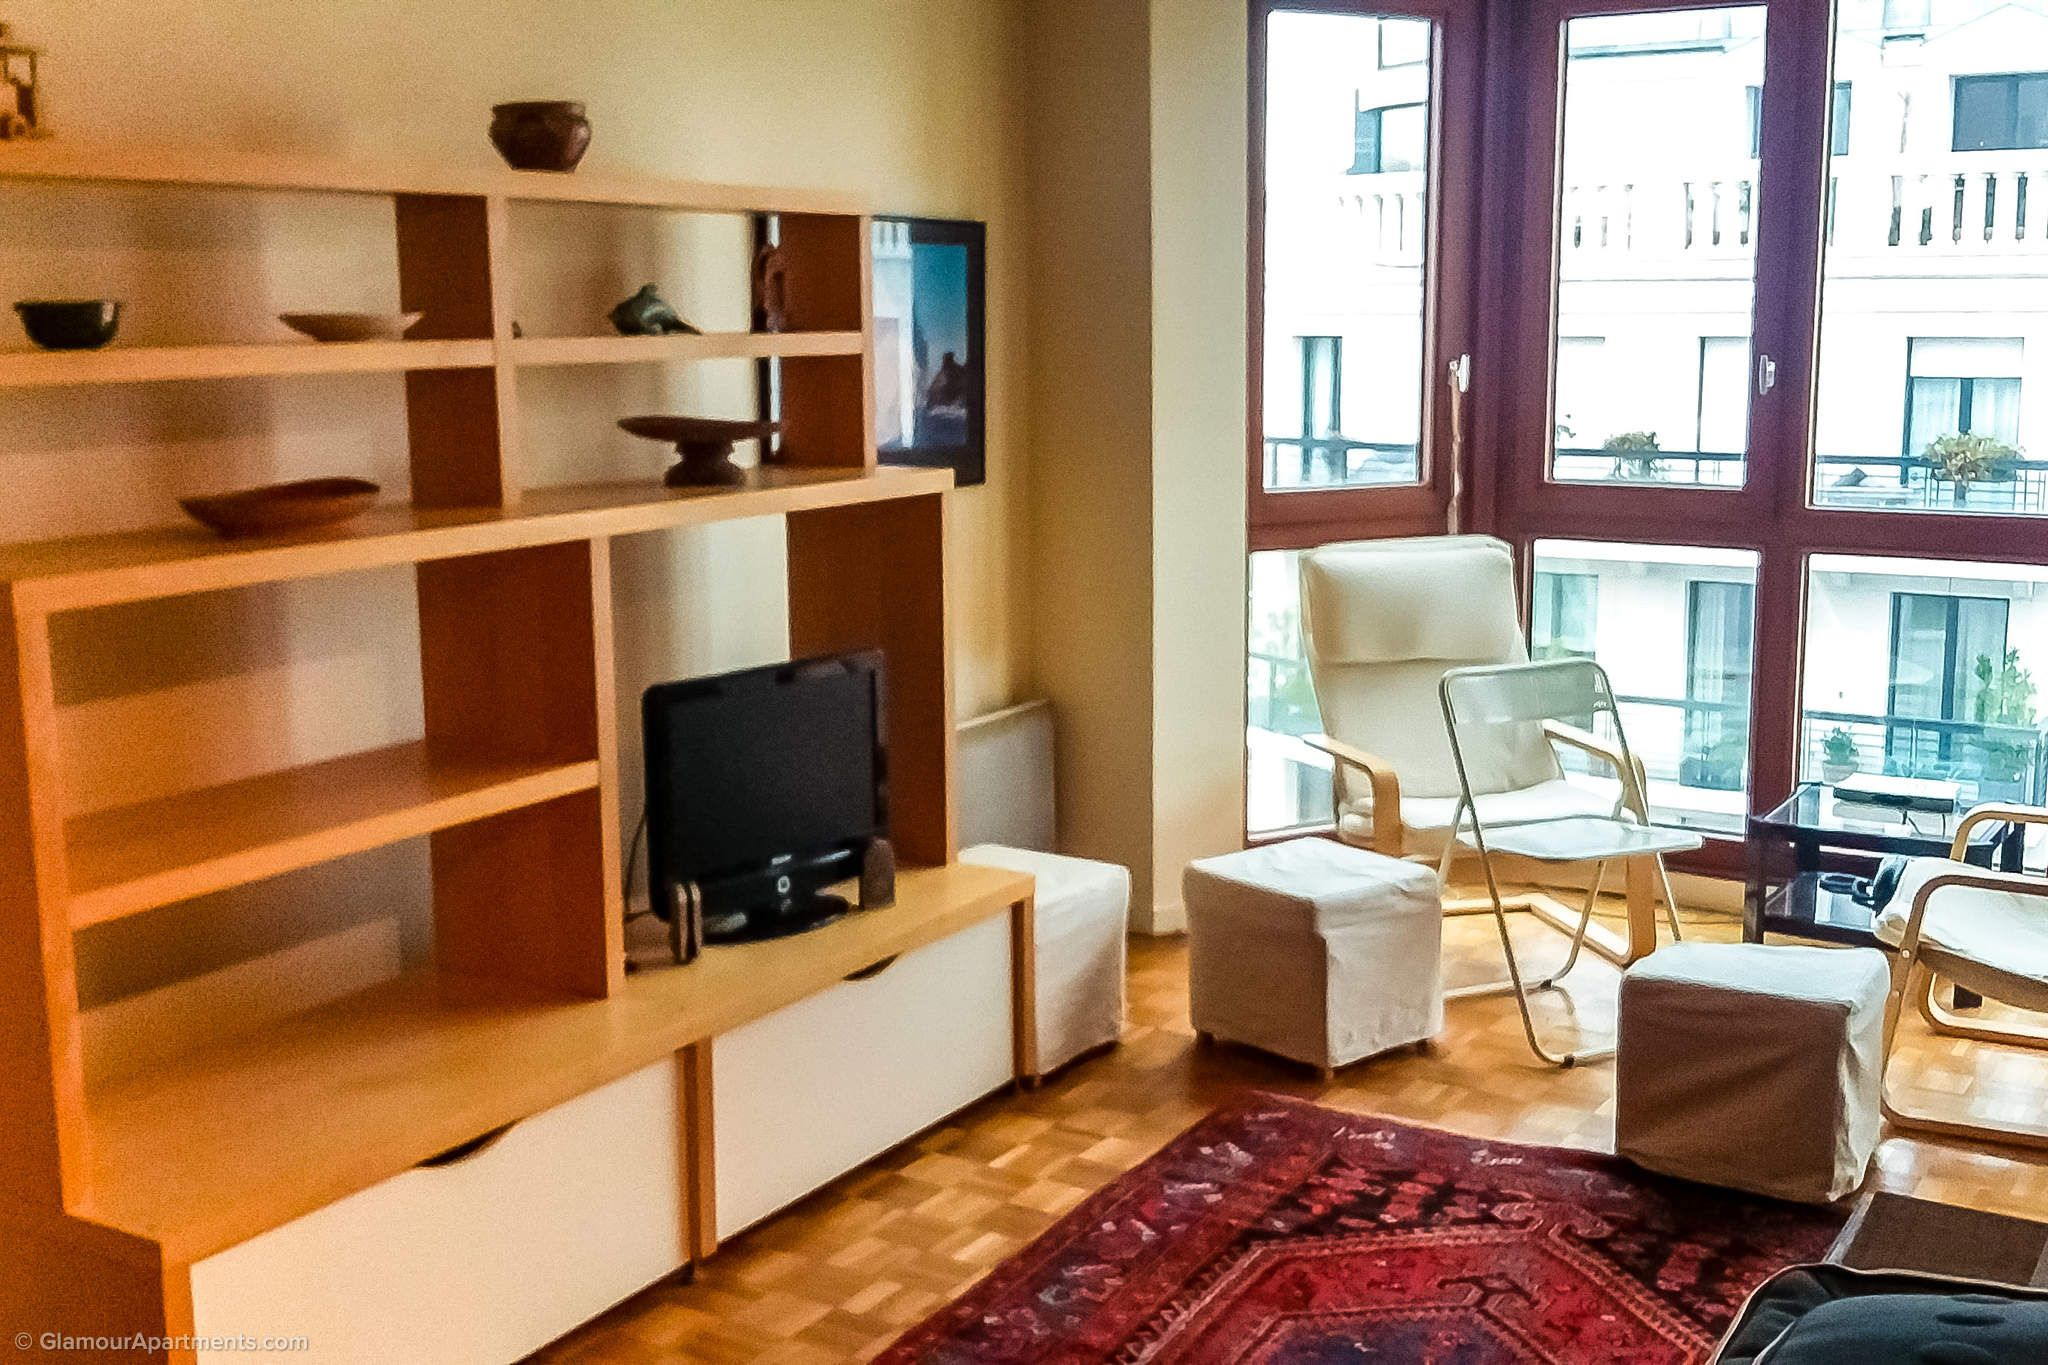 Furnished 1bedroom apartment for rent at Rue Ampère in